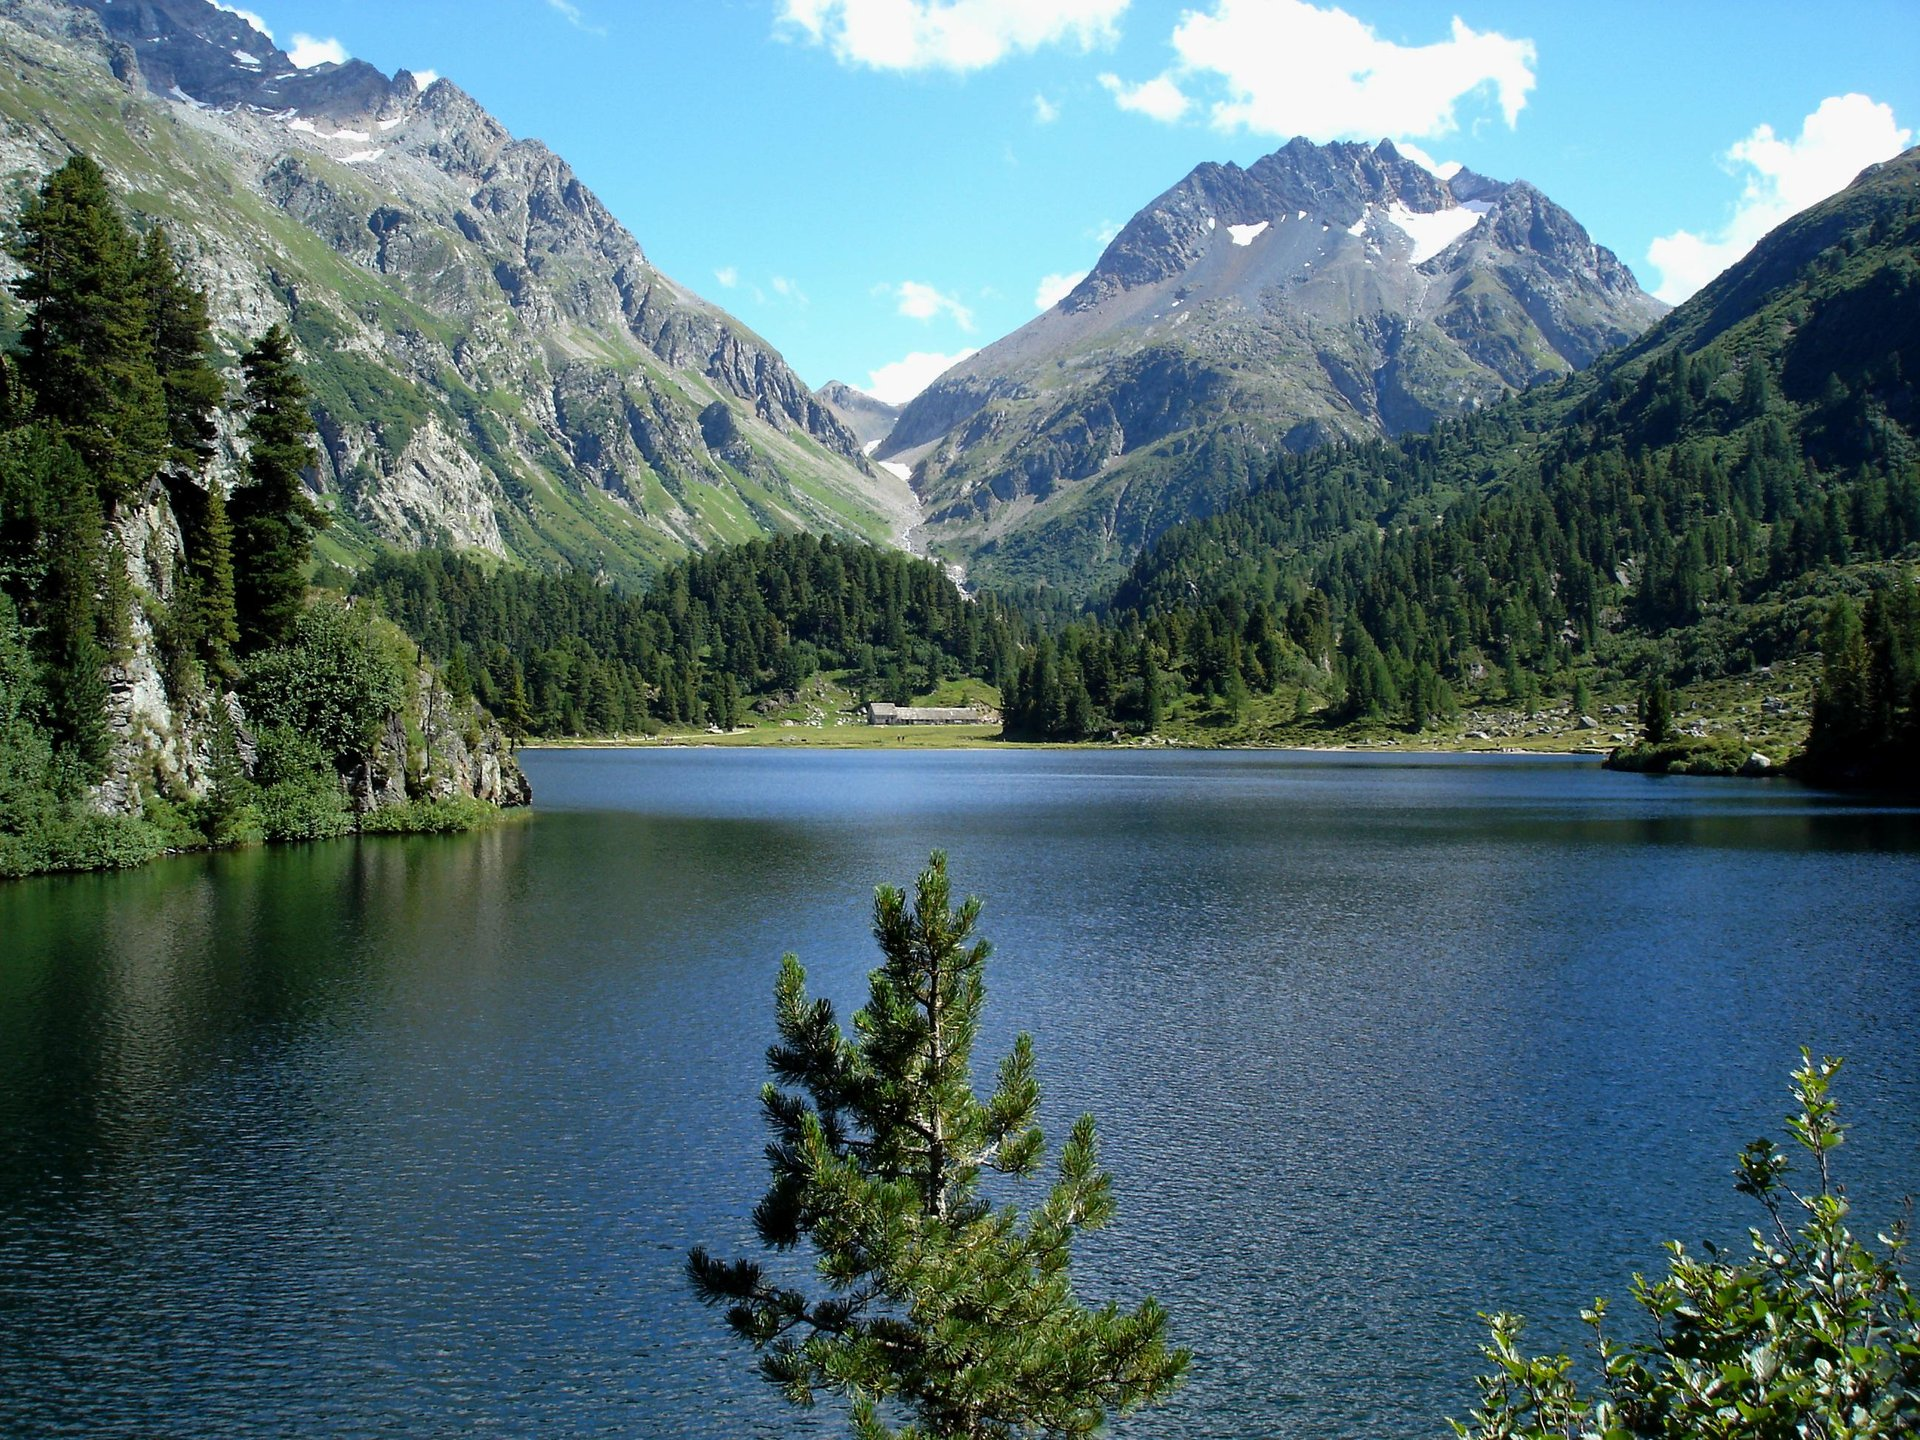 Lägh da Cavloc (Lake Cavloc), near Maloja in Graubünden, Switzerland. View on Monte Forno 2019